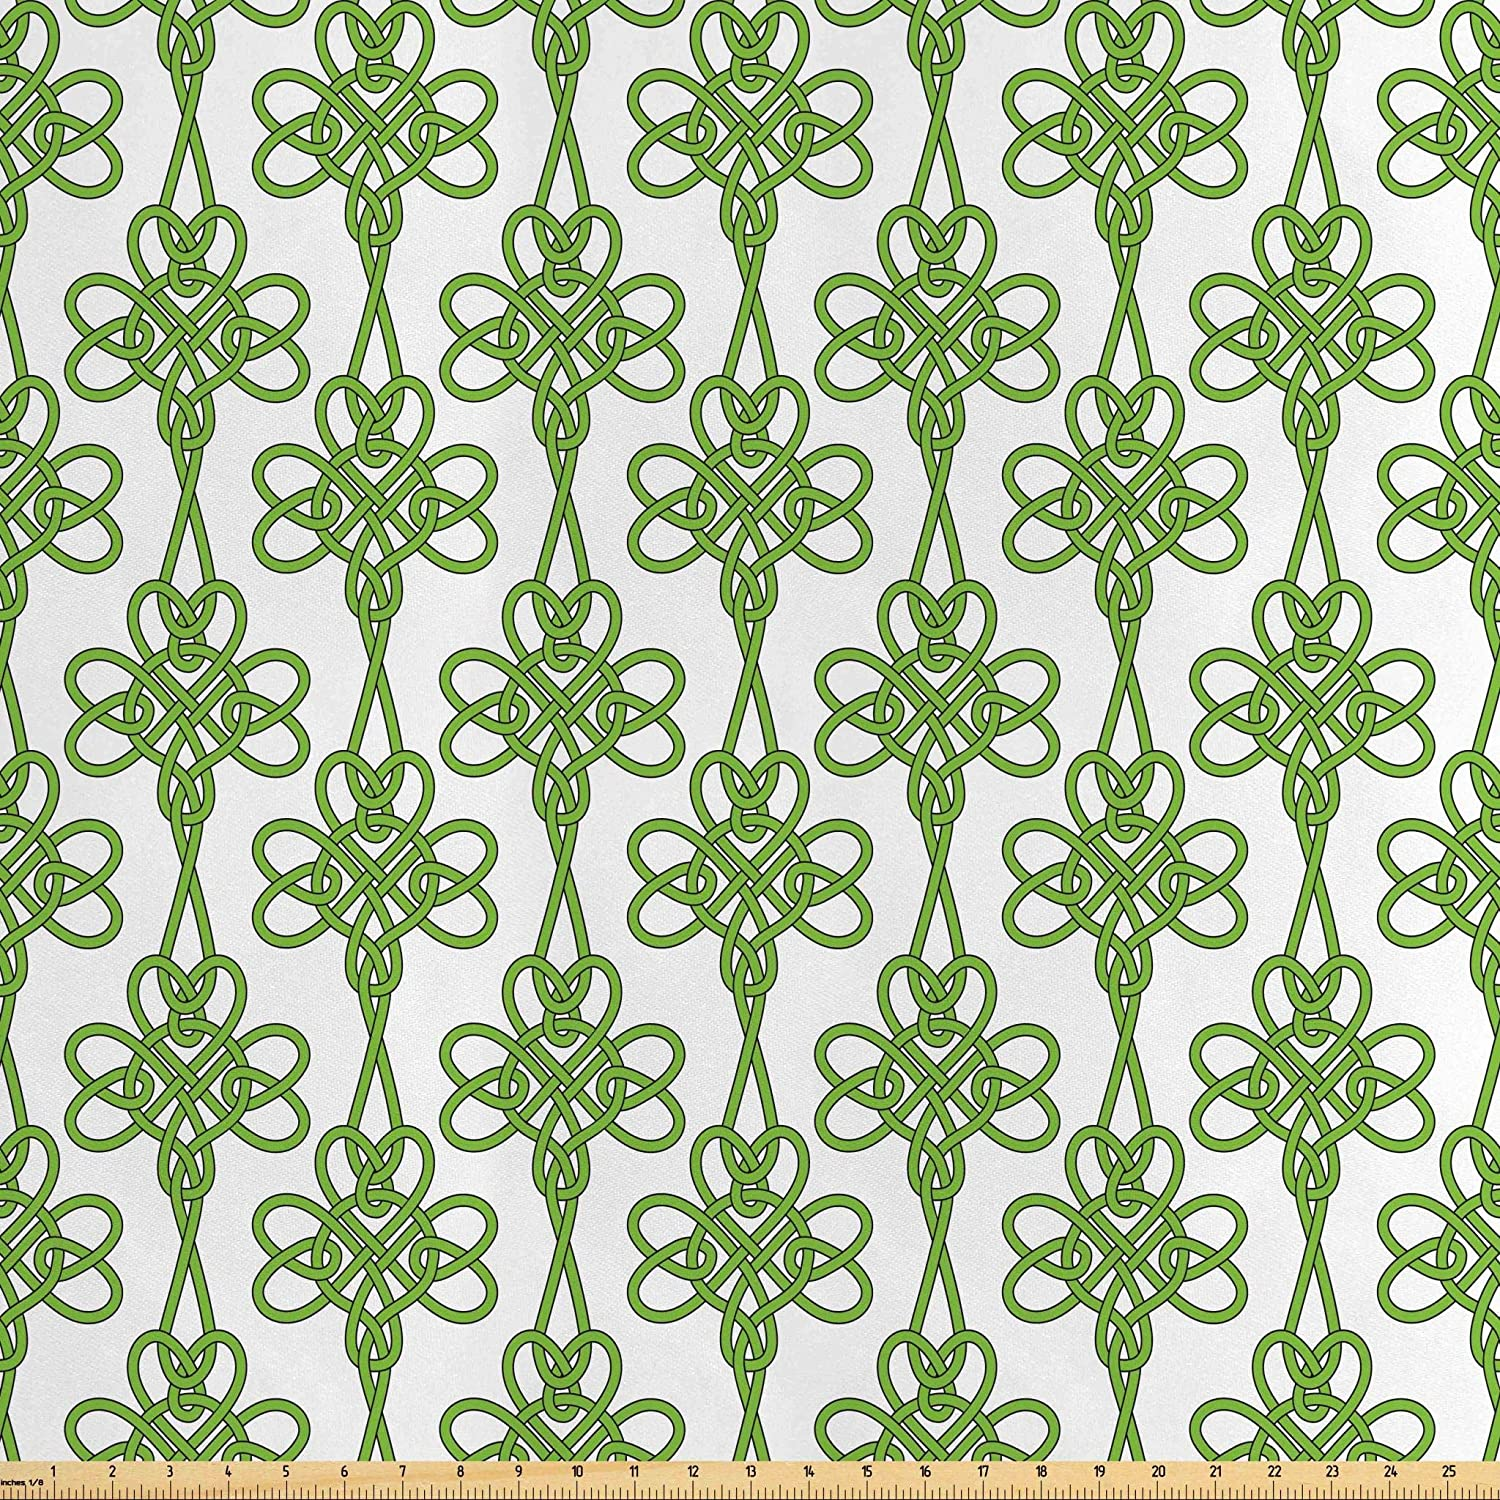 Lunarable Celtic Fabric by The Yard, St. Patrick's Day Theme Celtic Knots Lucky Clover Design Pattern Irish Theme Print, Decorative Satin Fabric for Home Textiles and Crafts, 10 Yards, Green White